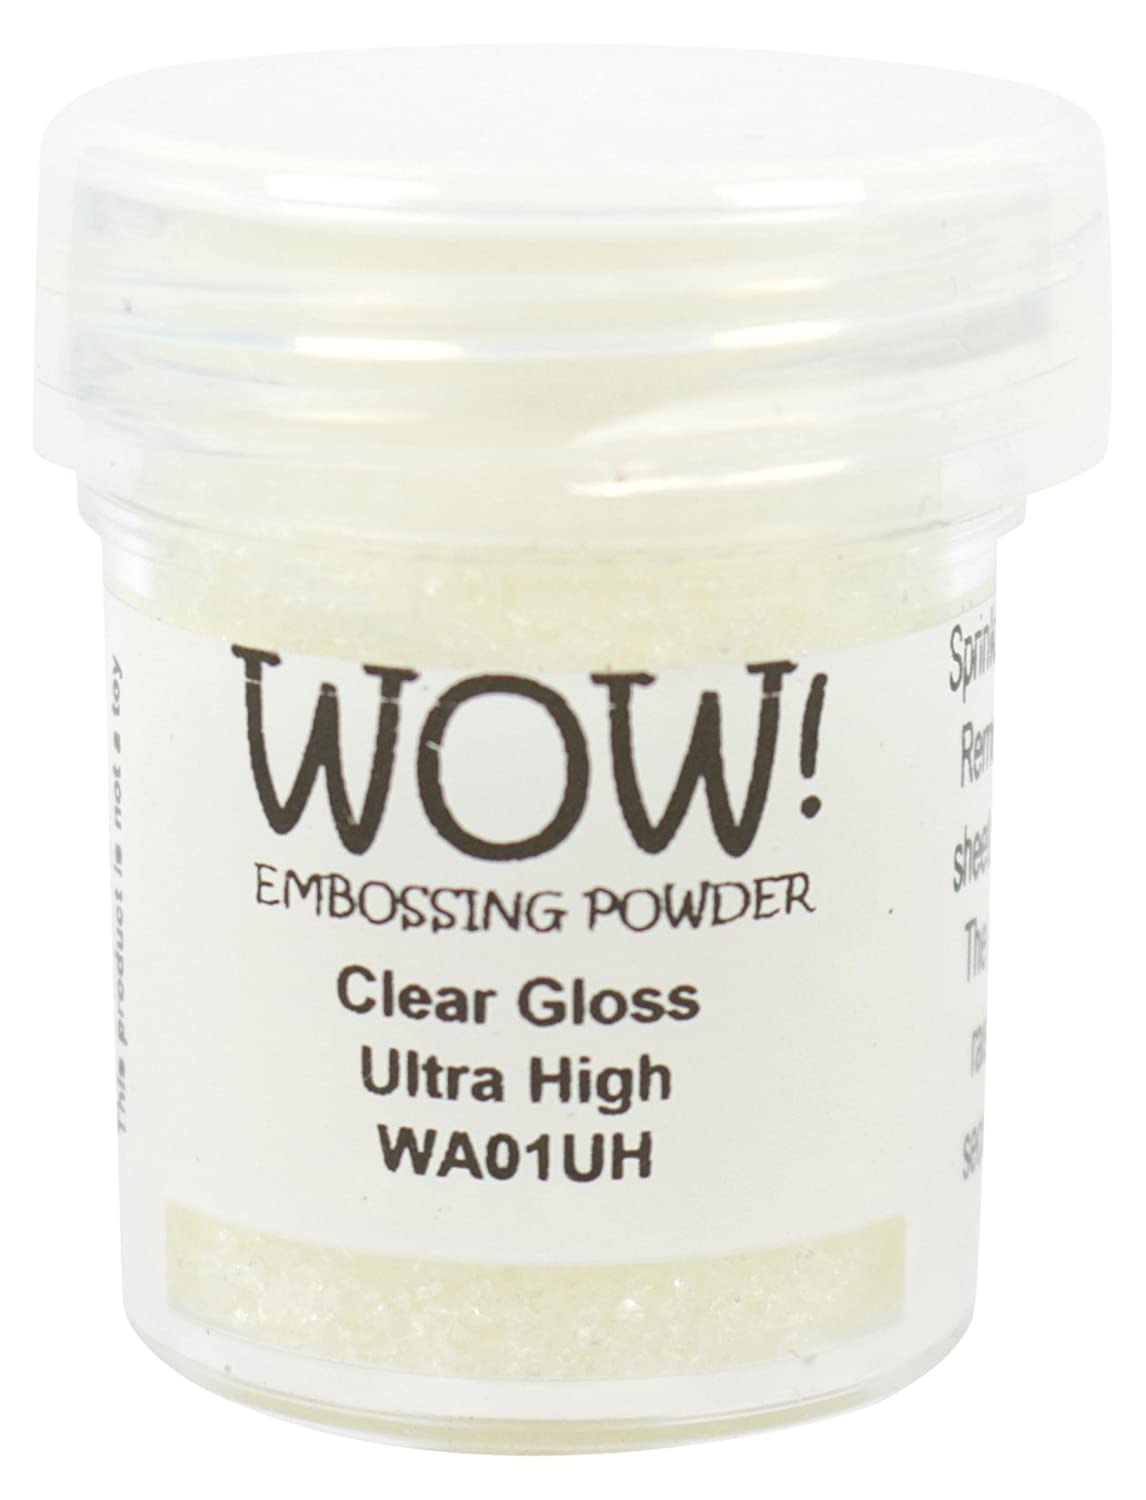 WOW Clear gloss-ultra High, polvere per goffratura,, 5 x 3 x 3 cm WOW Embossing Powder WOWA01UH